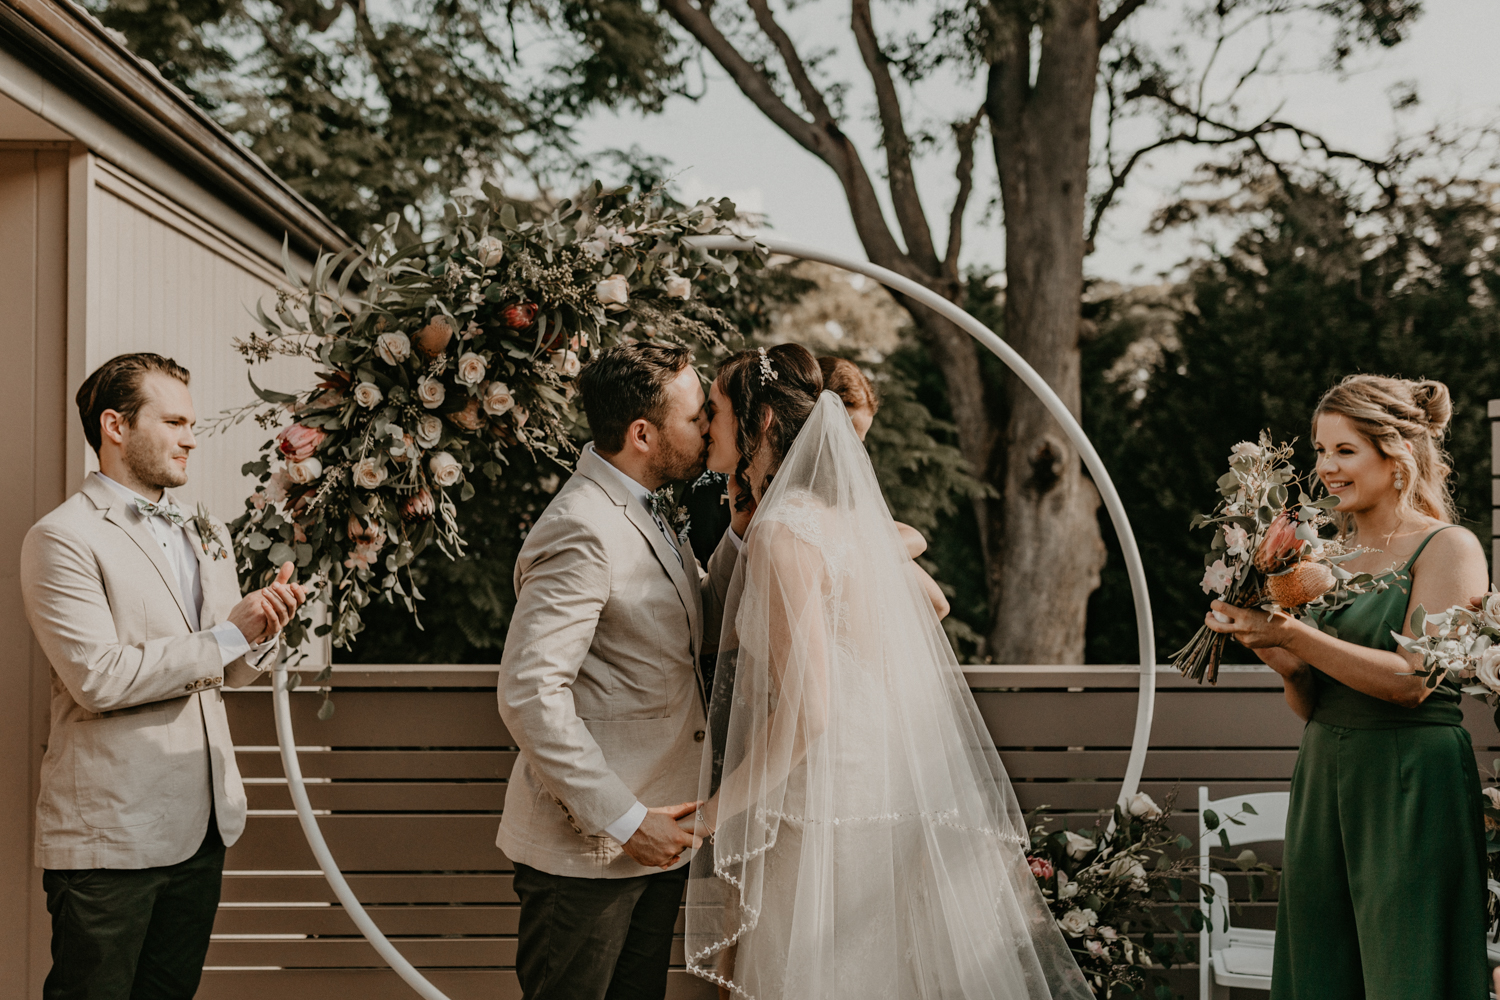 Sydney Romantic Authentic Natural Free Spirit Candid Wedding Photography-42.jpg